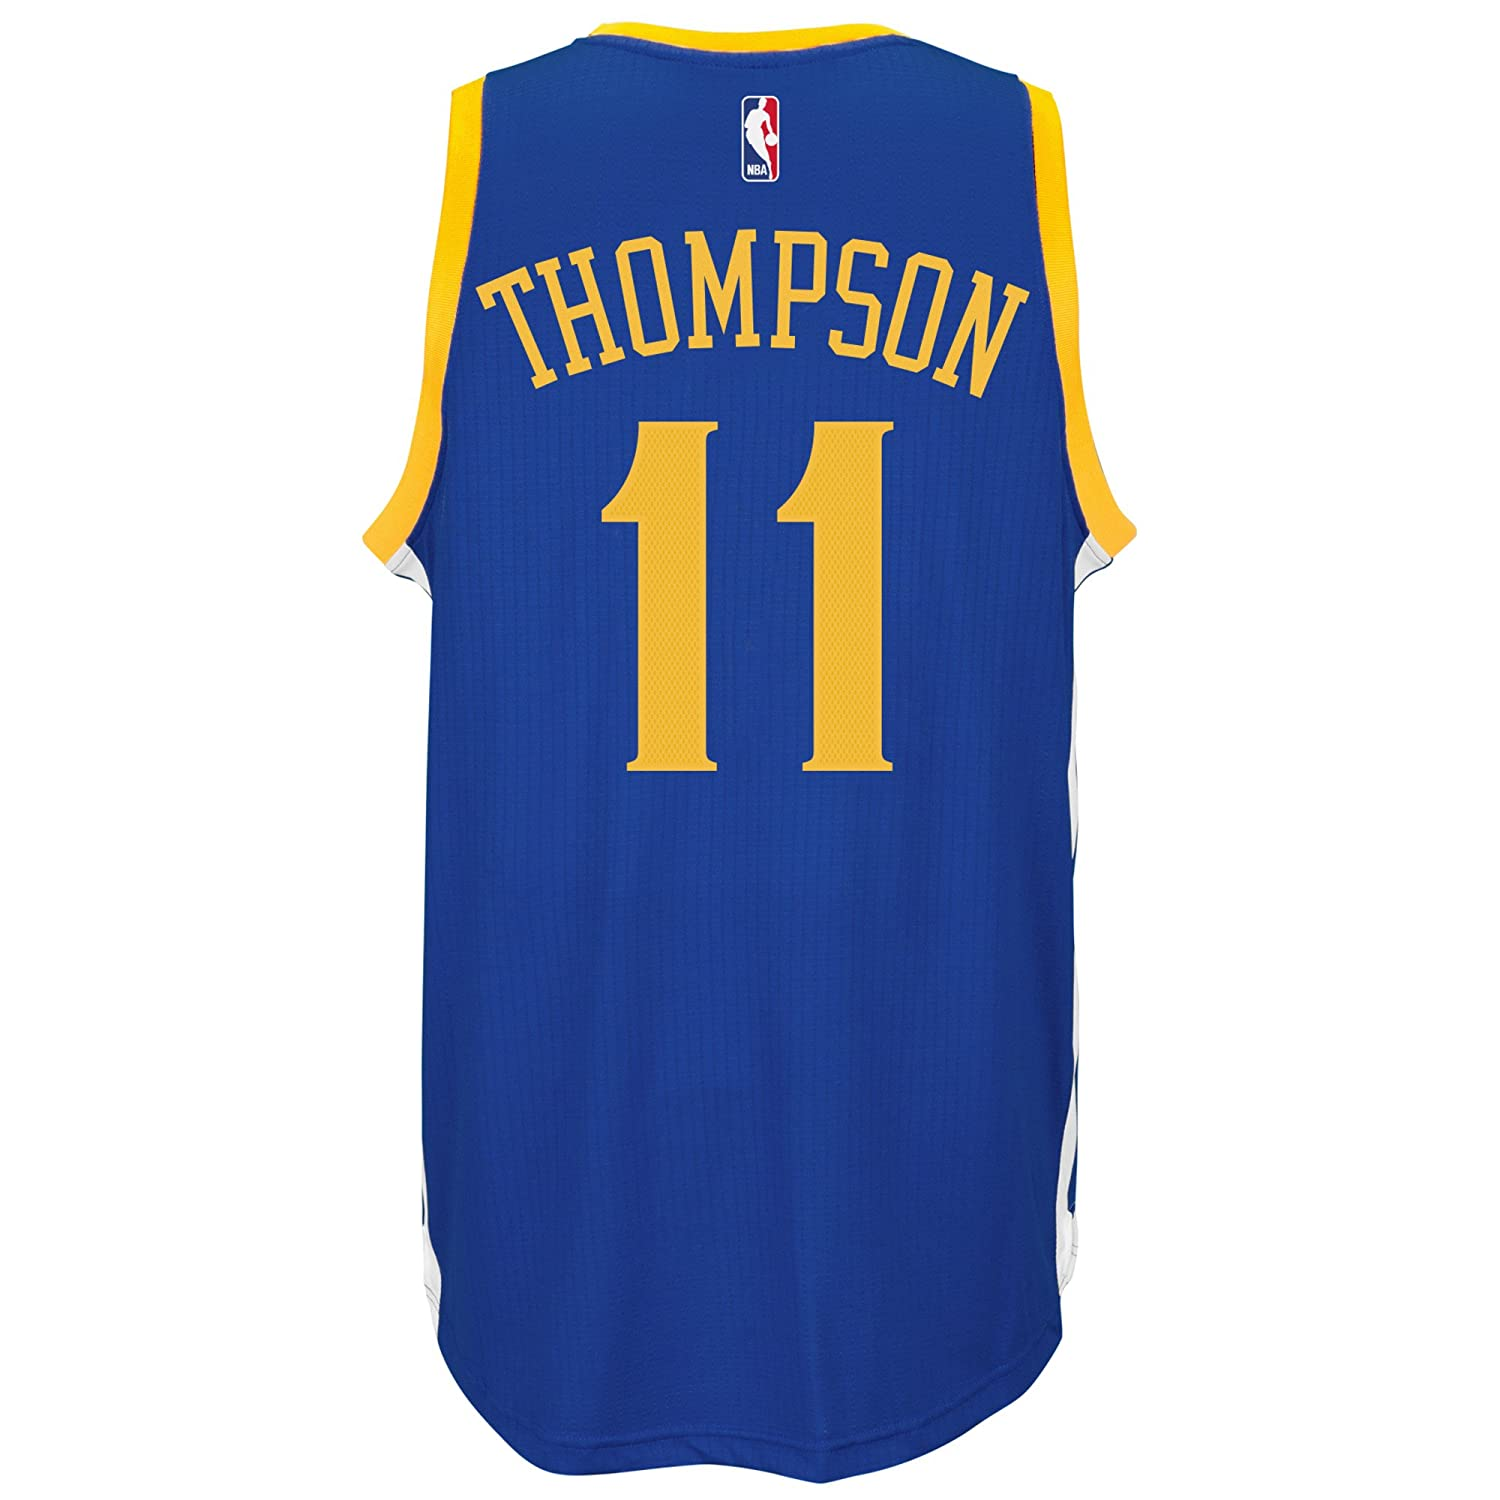 Adidas Klay Thompson Golden State Warriors NBA Swingman Carretera réplica de la Camiseta, Large: Amazon.es: Deportes y aire libre